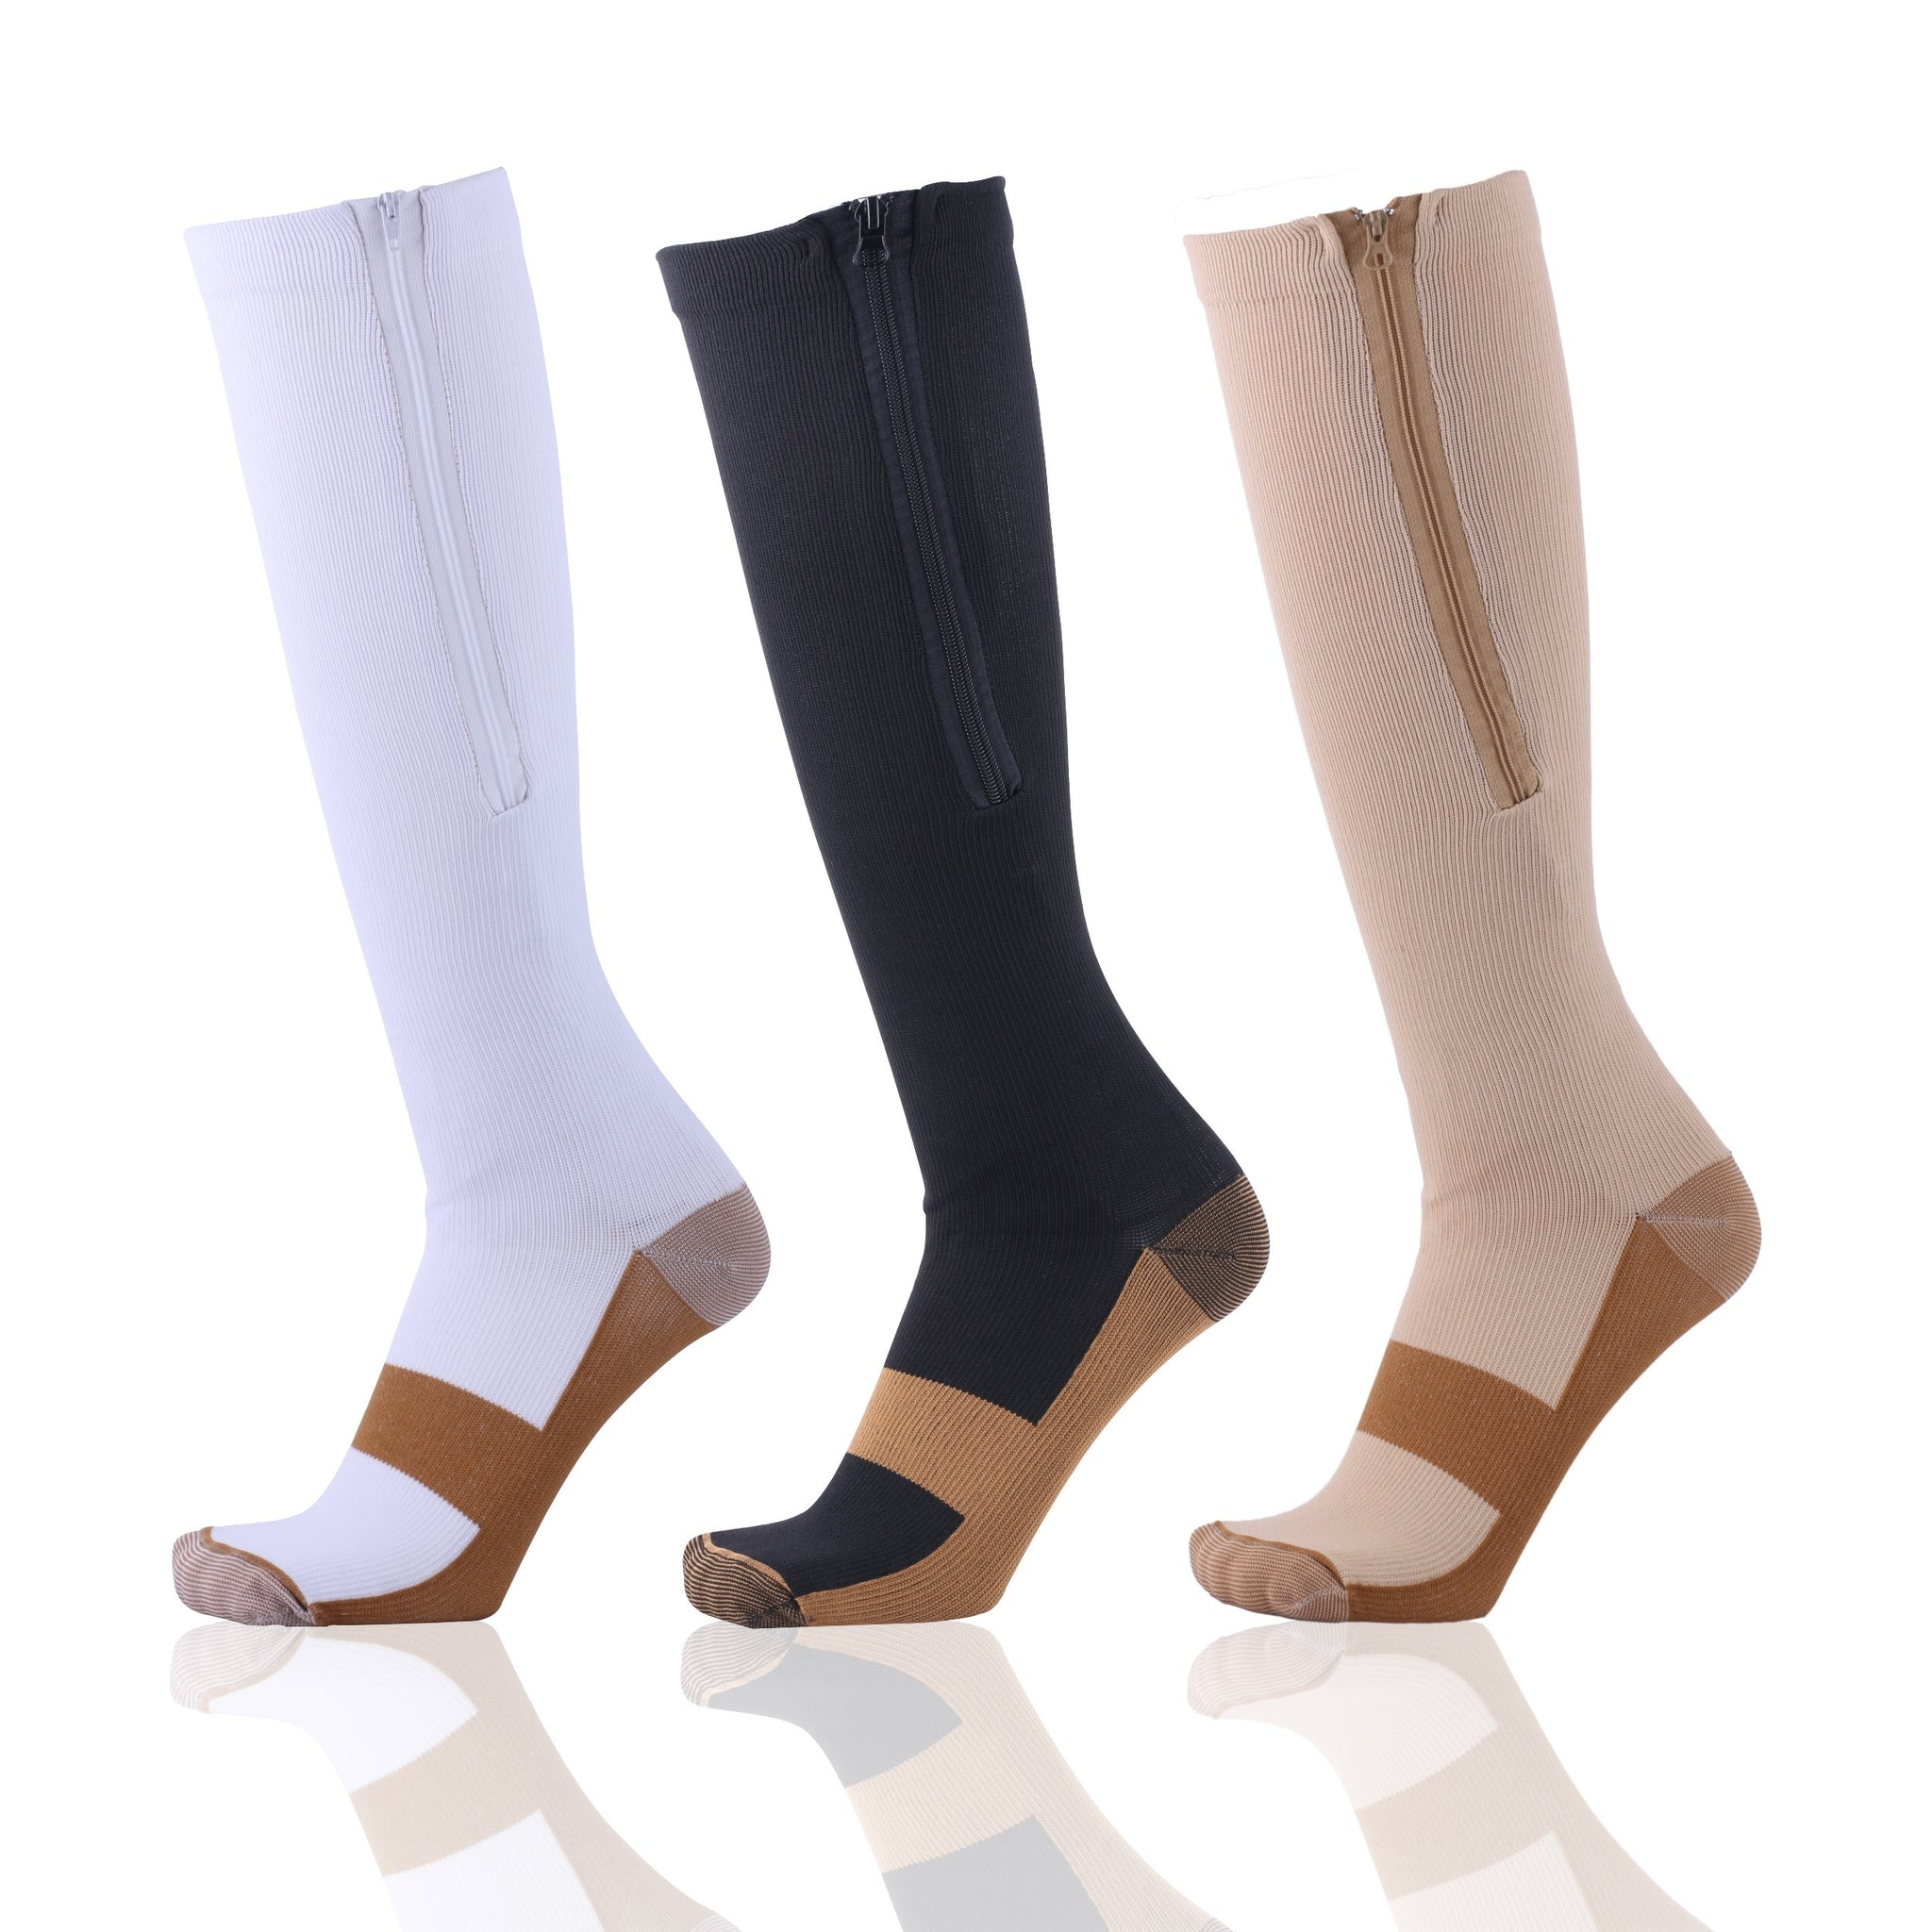 3-Pairs: Copper Infused Zipper Compression Socks